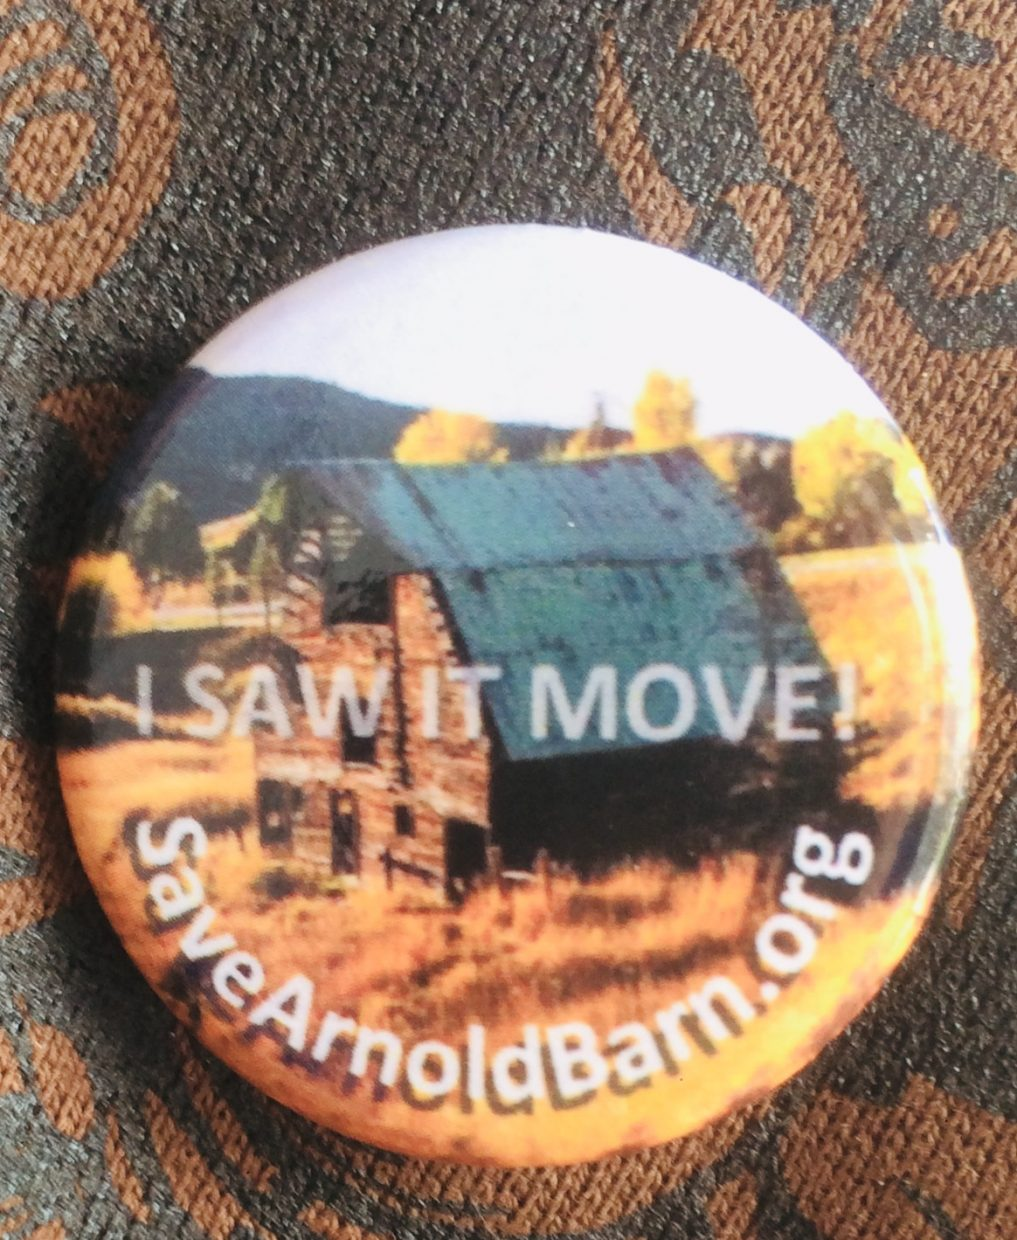 A shot of the button handed out for the people who watched the Arnold Barn make its move.